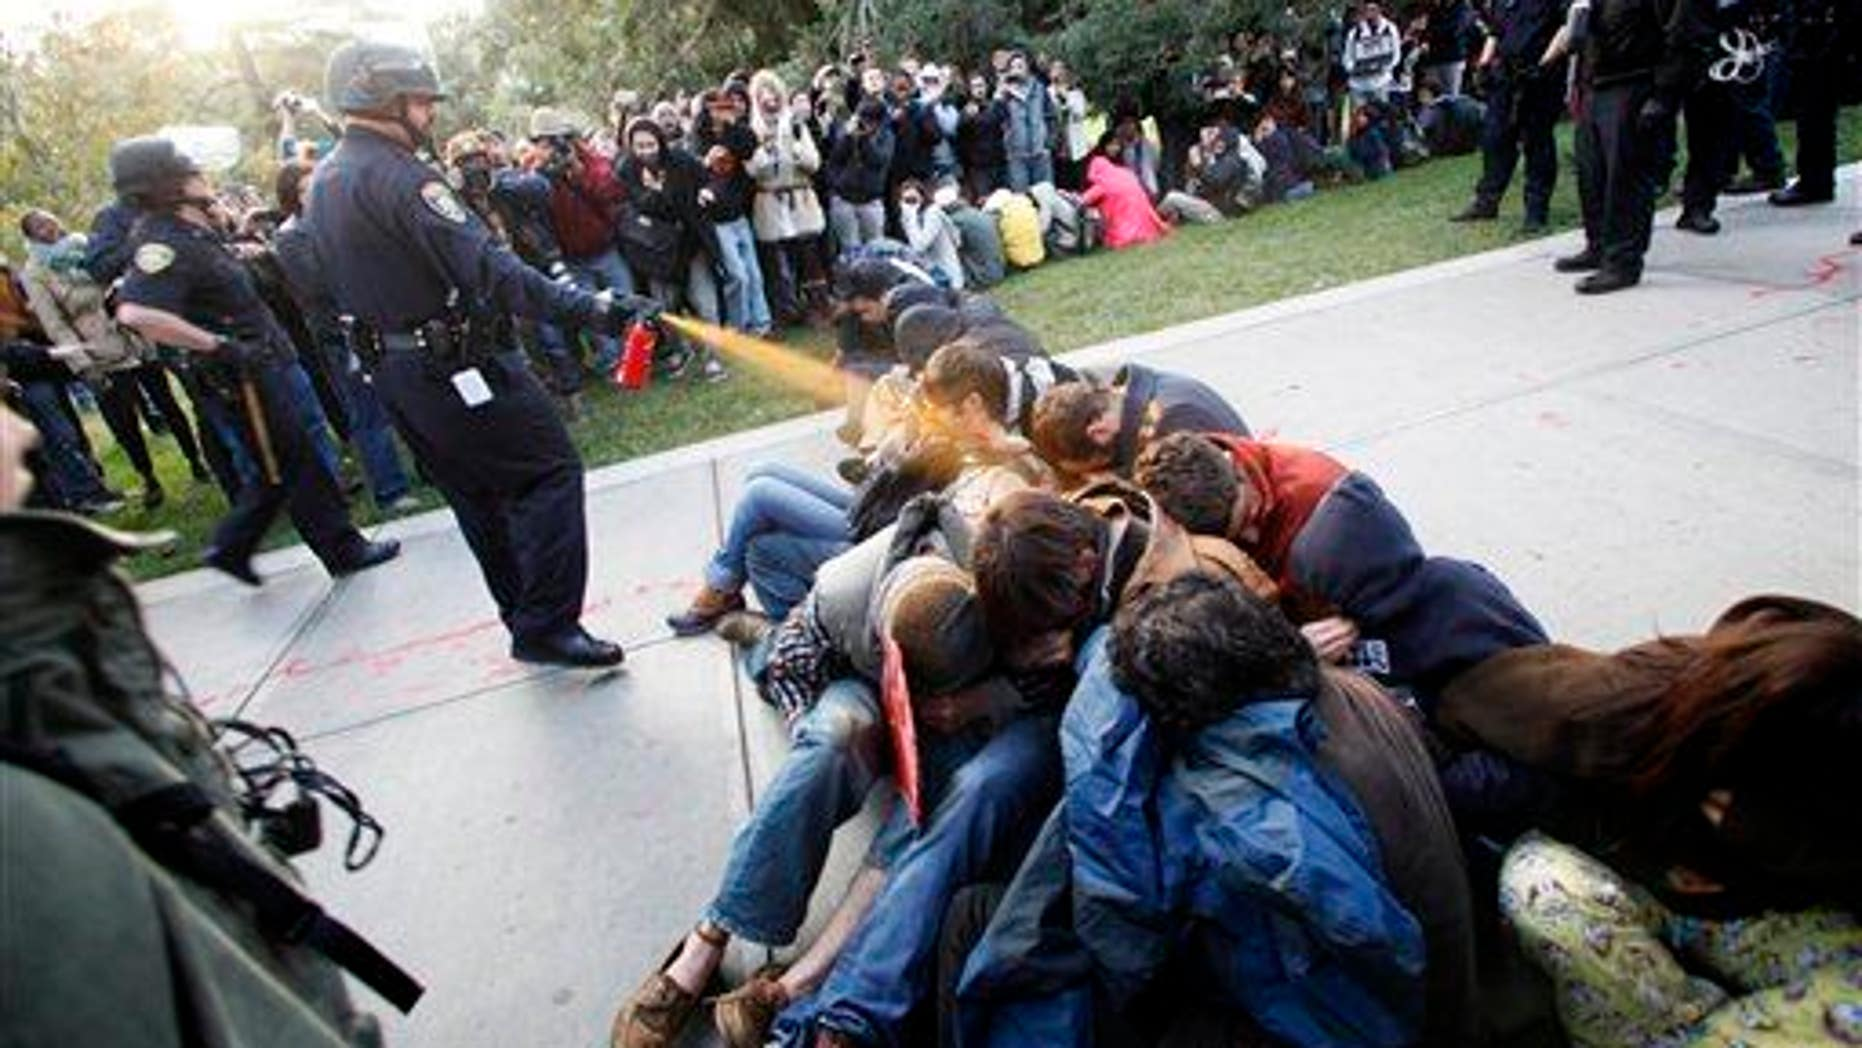 In this Nov. 18, 2011, file photo, University of California-Davis Police Lt. John Pike uses pepper spray on Occupy UC Davis protesters.